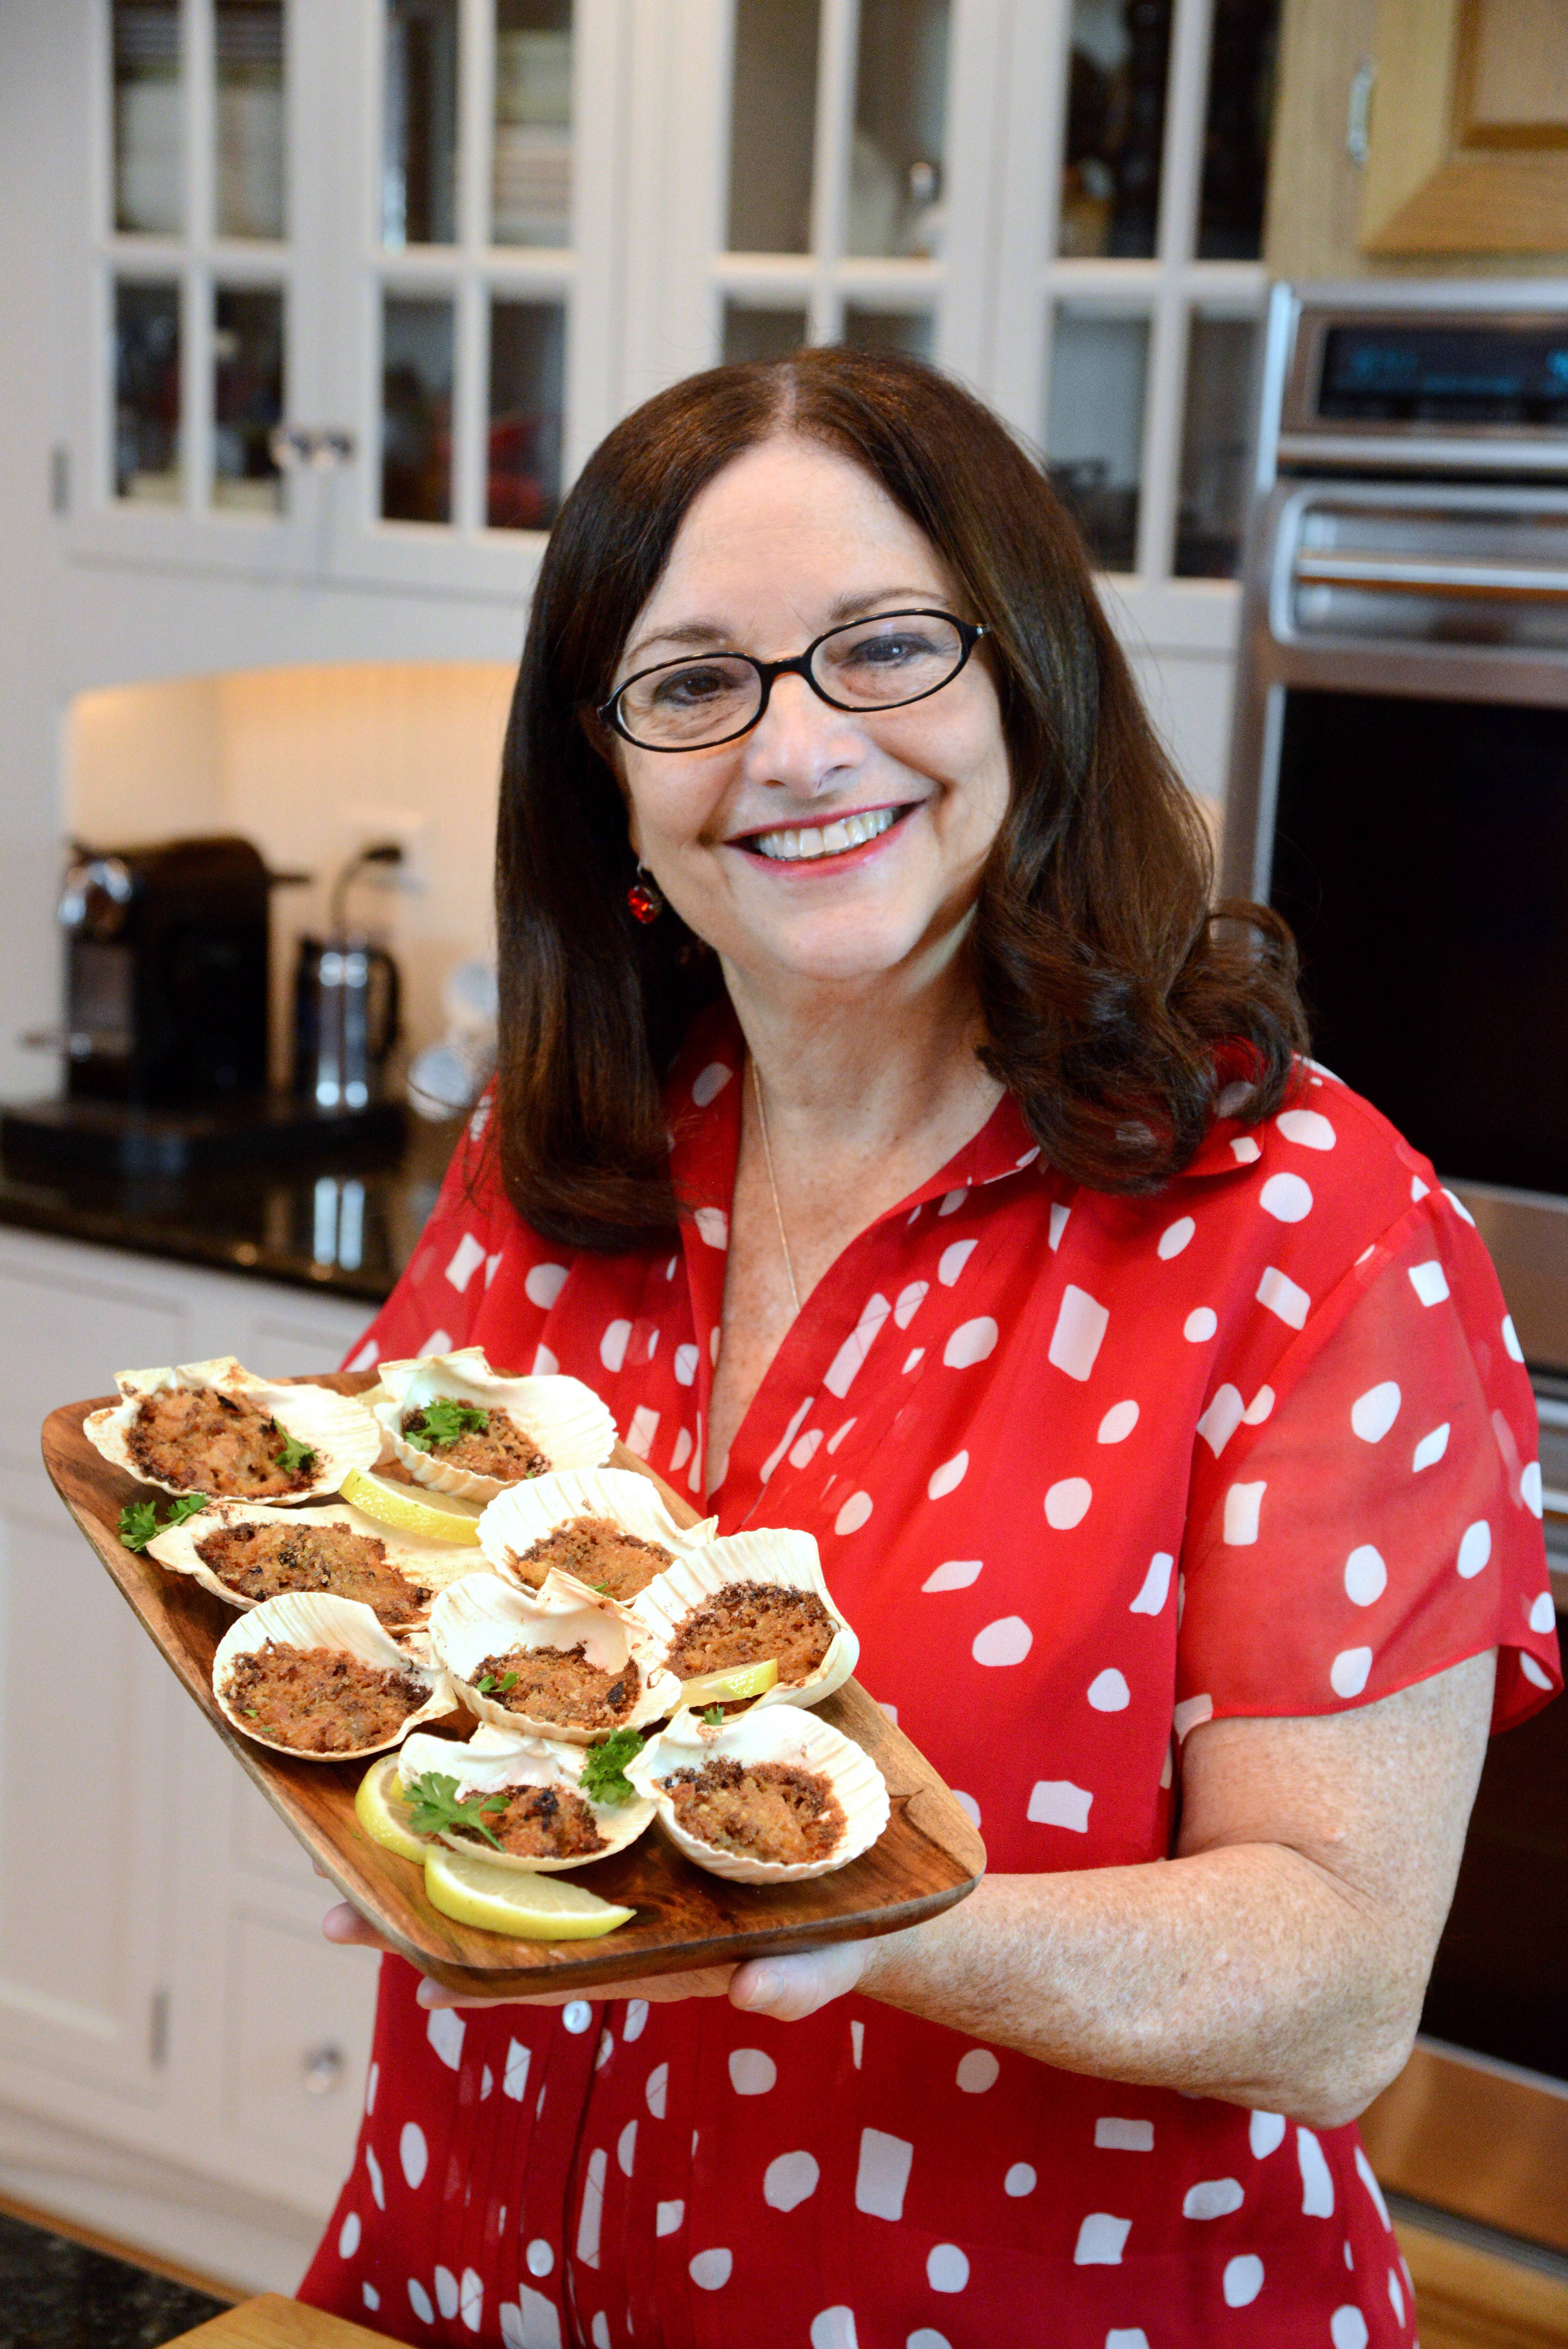 Cara Kretz of North Barrington often serves her Baked Clams Italian Style for holiday feasts.